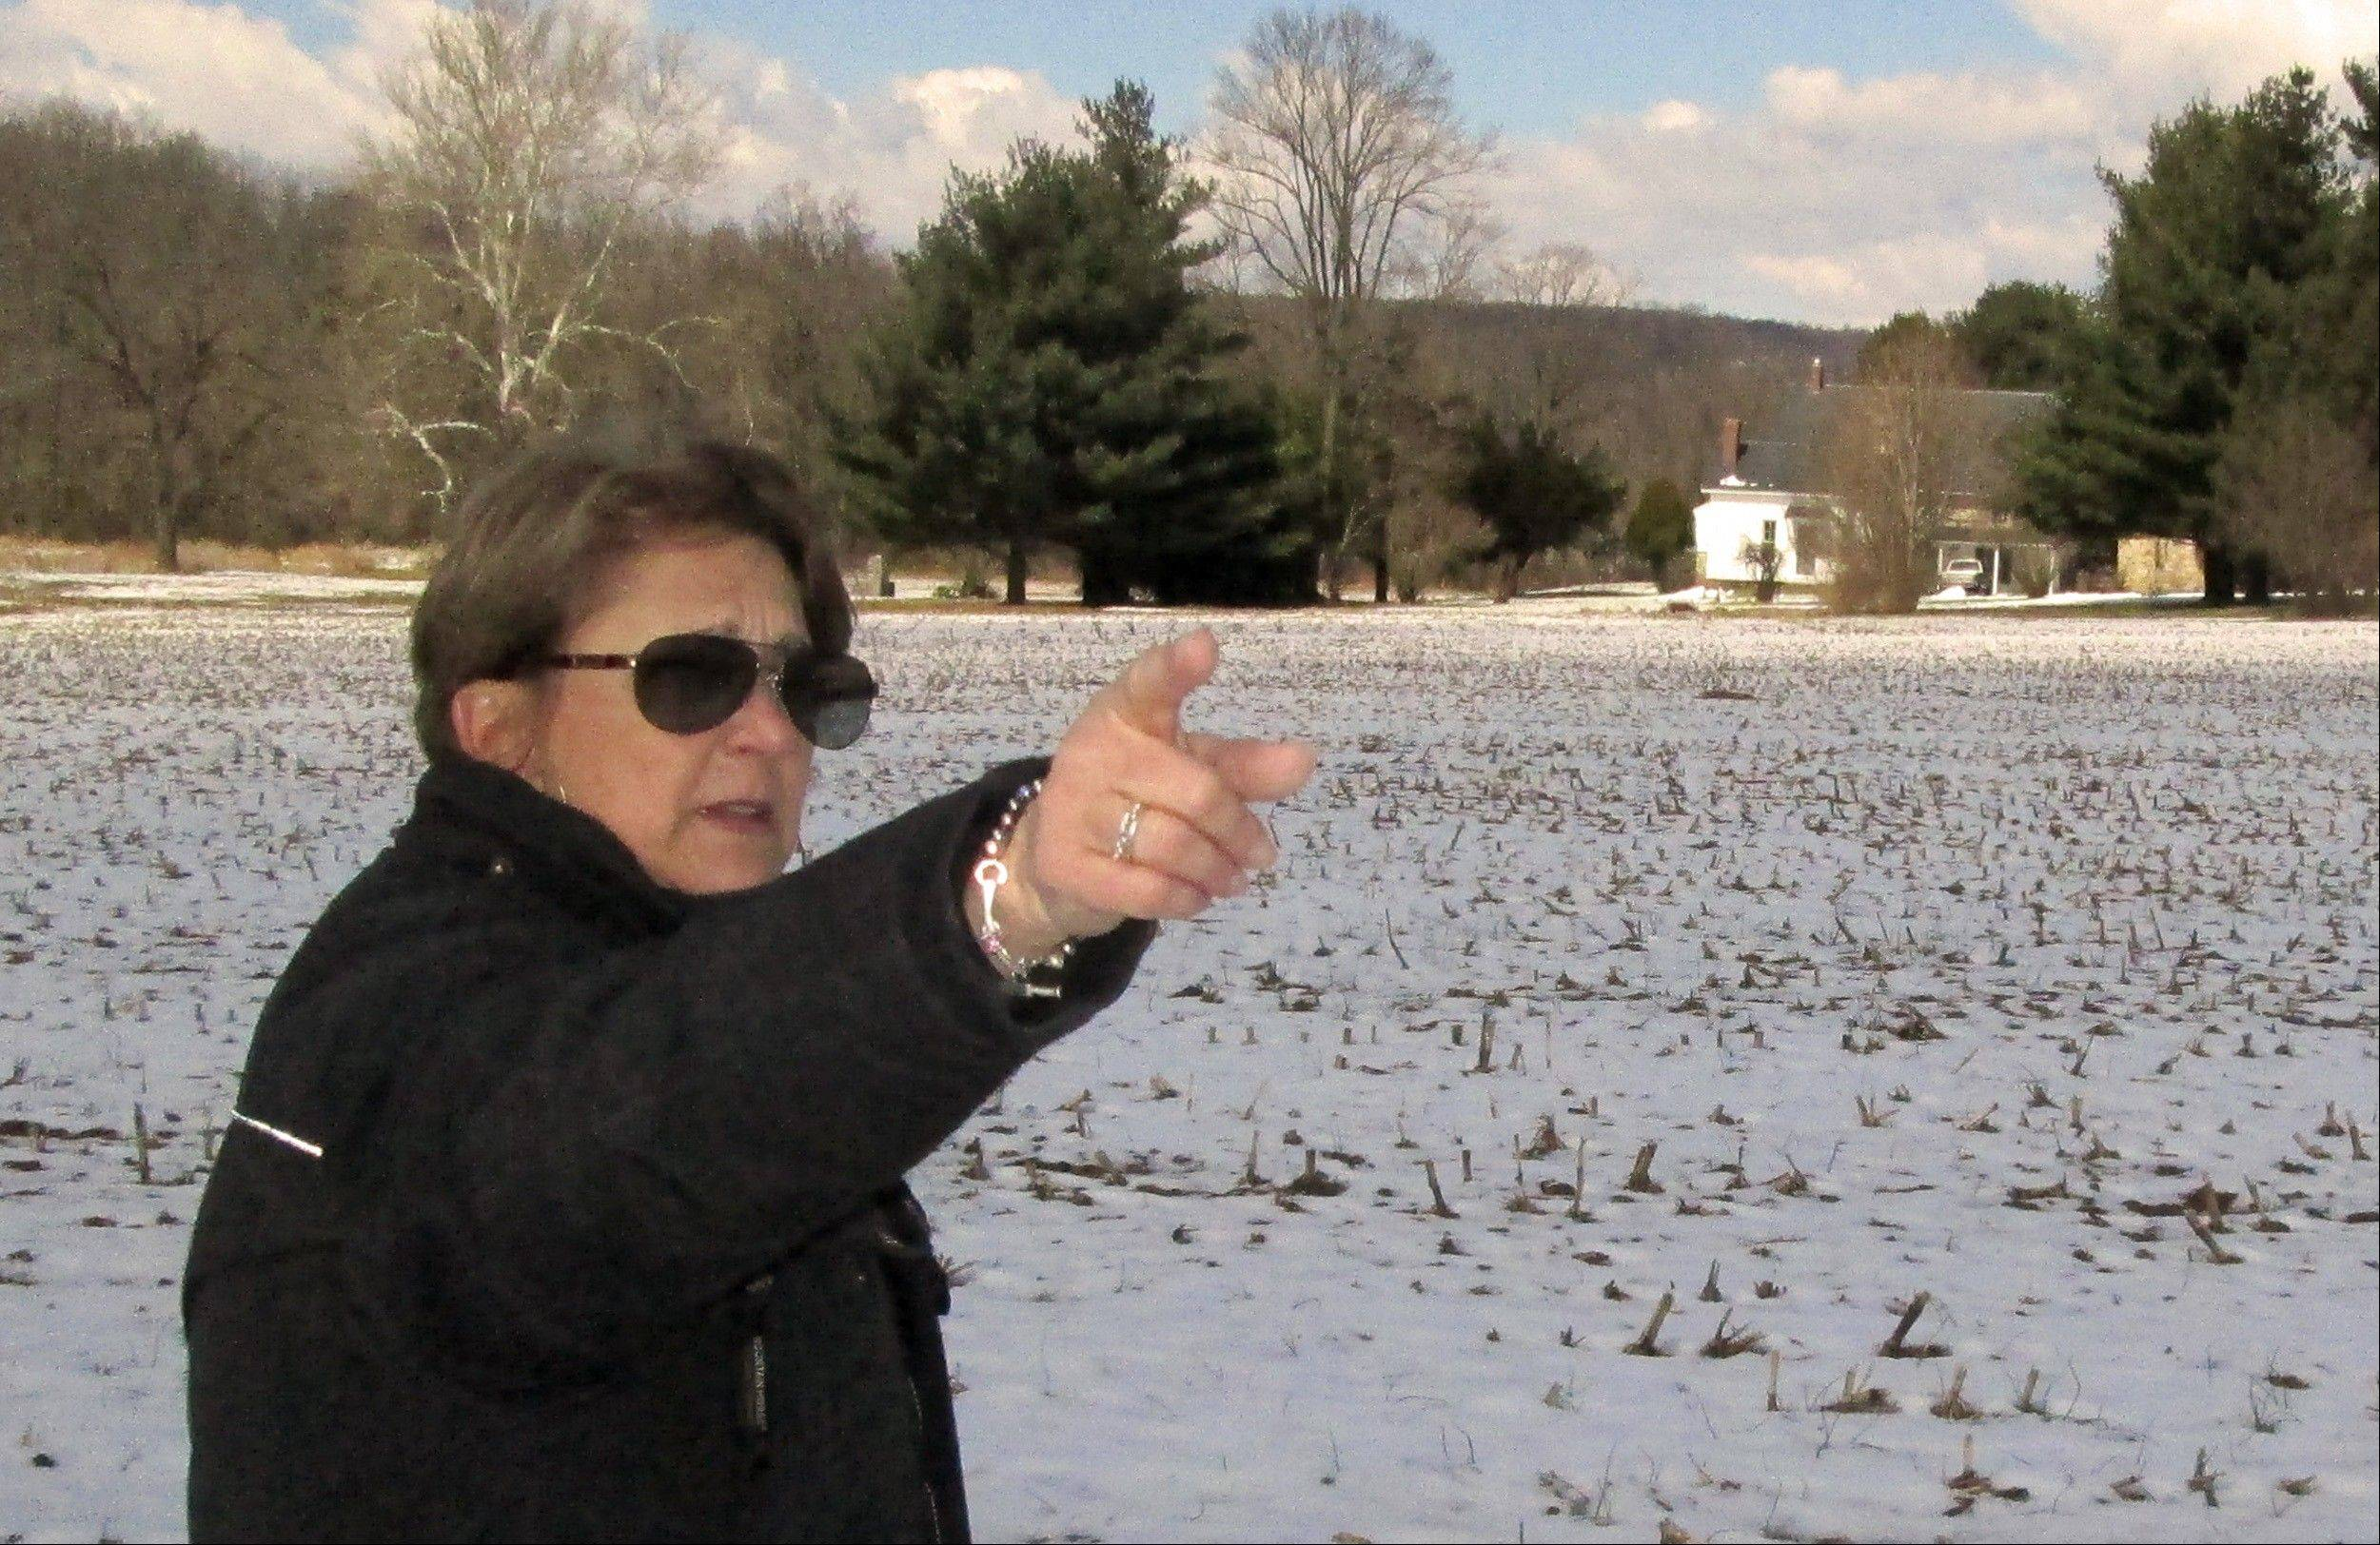 Associated PressIn this photo from March 26, Carol Tanzola, president of Friends of Camp Security, points out the property on a 47-acre parcel, located about four miles east of York, Pa. It includes the spot where a 1979 archaeological study found numerous artifacts that confirmed local lore that the area had once served as Camp Security, a prison for the English, Scottish and Canadian soldiers who were captured after defeats in the battles of Saratoga and Yorktown.